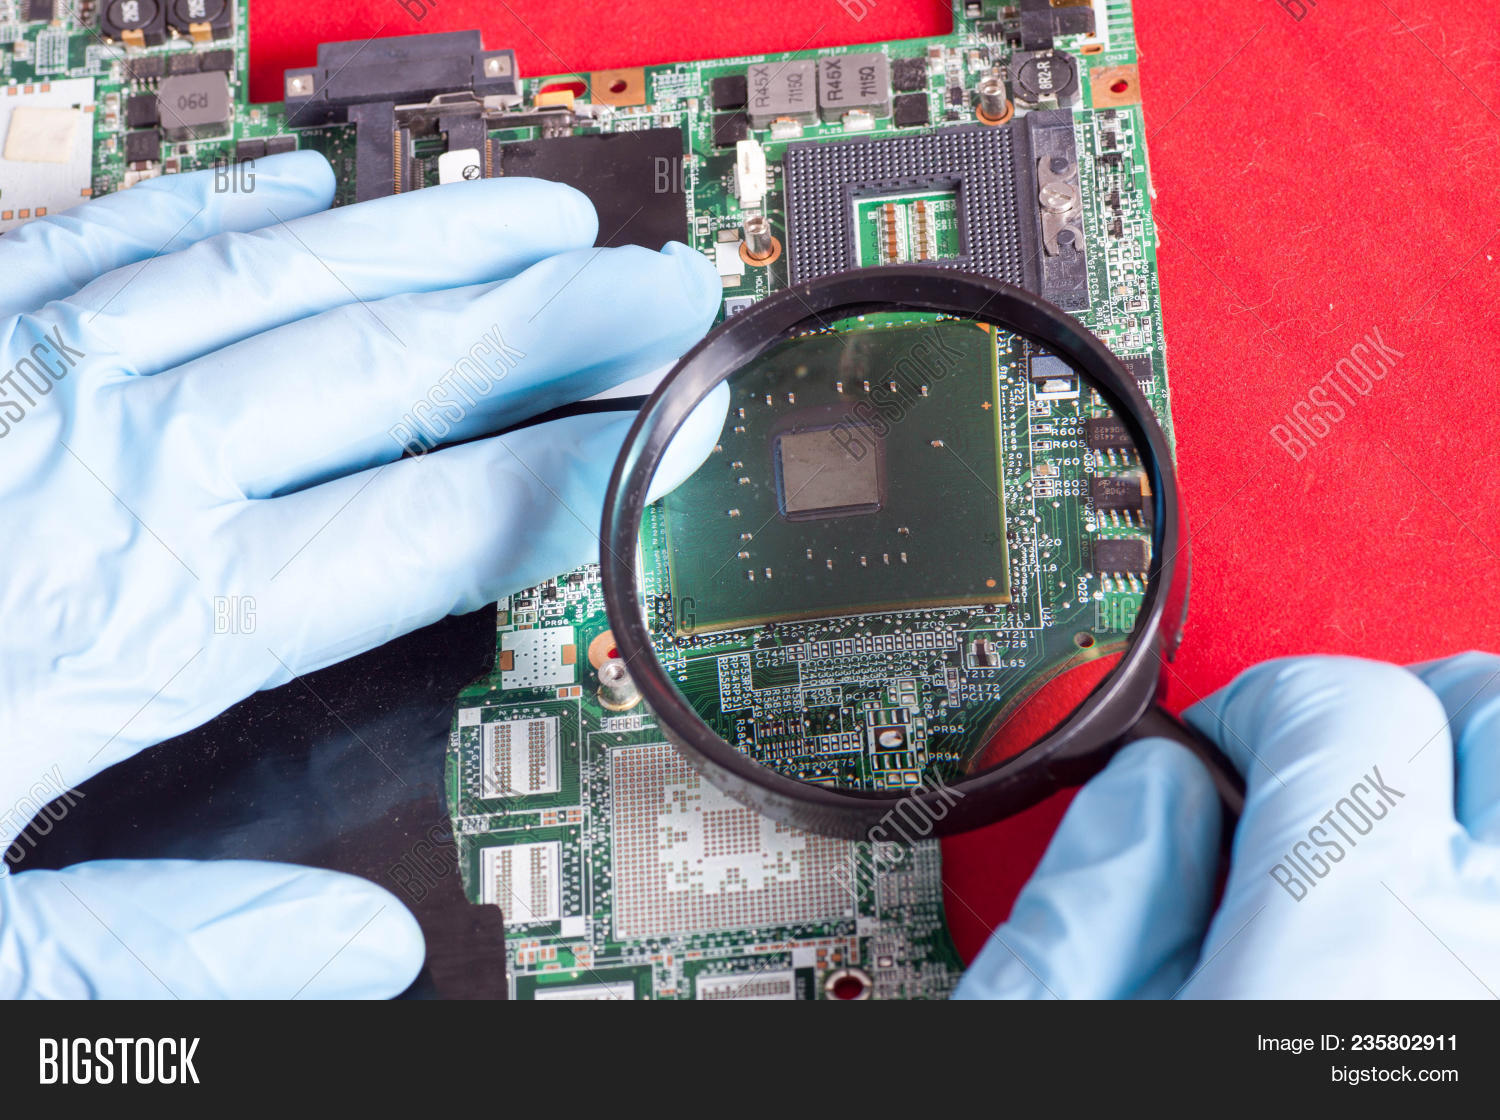 Magnifier Hands Blue Image Photo Free Trial Bigstock Pcb Circuit Board Assembly Buy Boardpcb In With Gloves Showing Or Looks On Printed